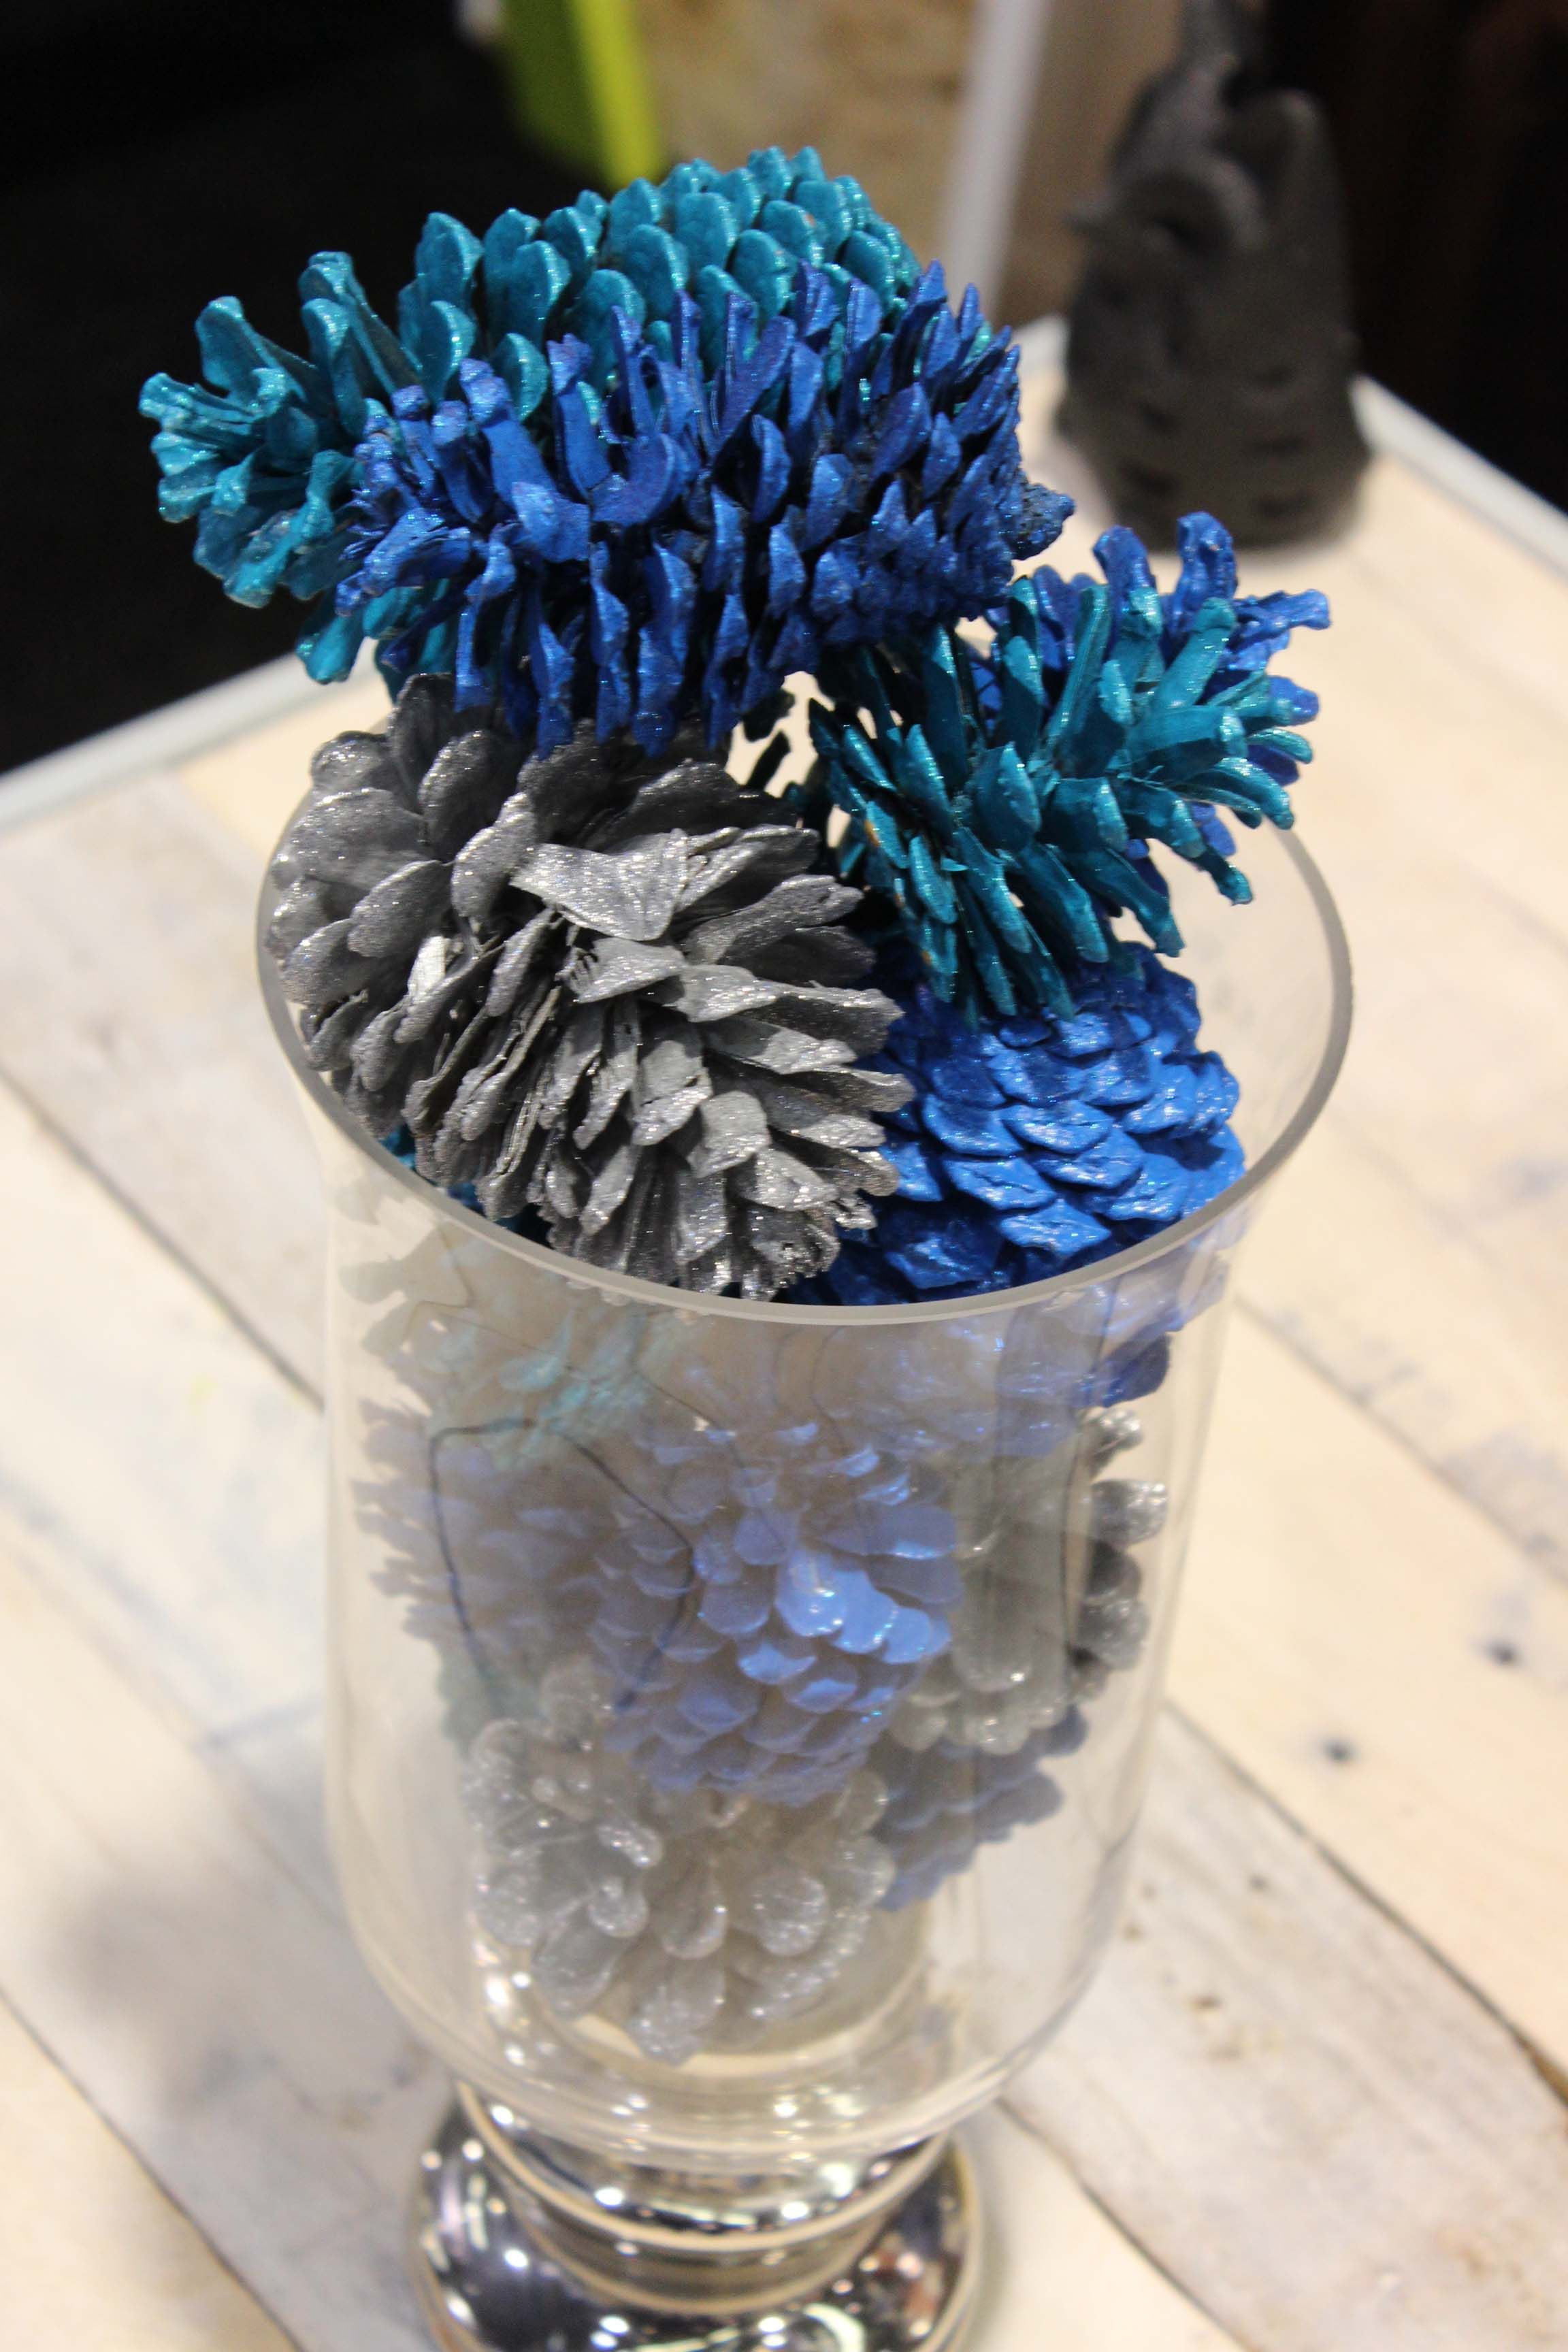 Glitter Vases for Sale Of Blue Vase Filler Photos Best 15 Cheap and Easy Diy Vase Filler Ideas Pertaining to Blue Vase Filler Pictures Rust Oleum Spray Painted Glitter Pine Cones as A Vase Filler Of